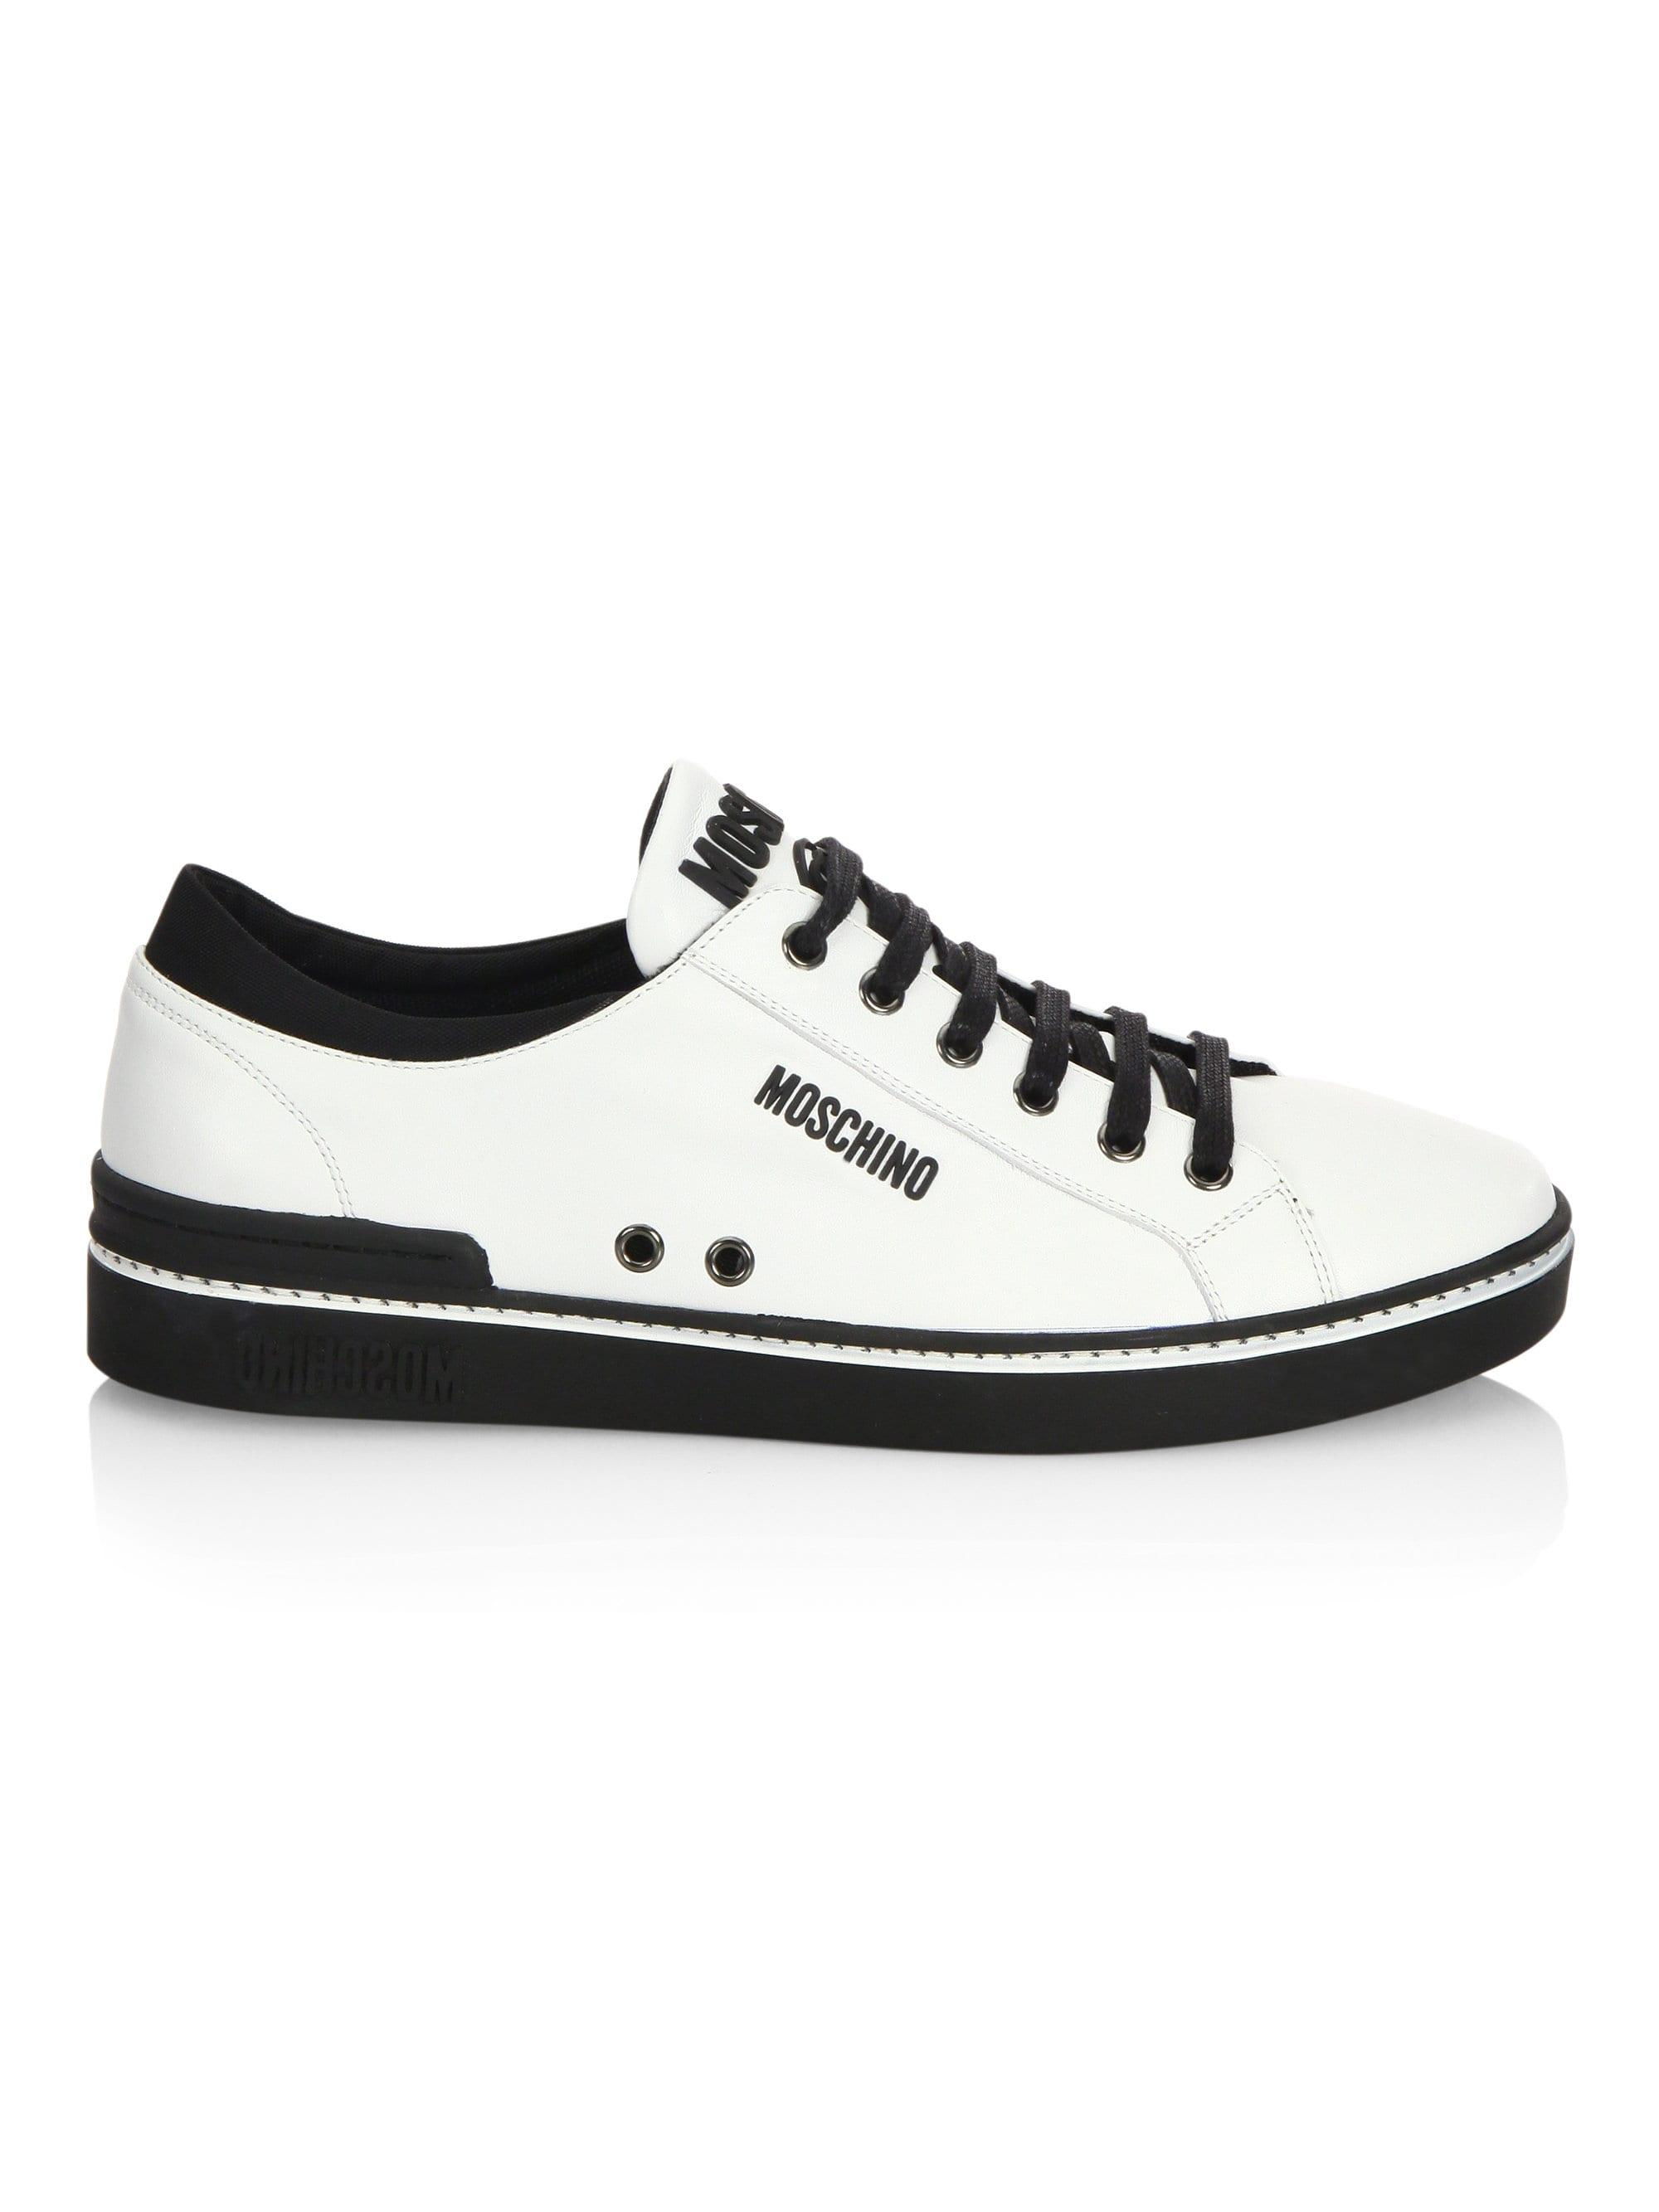 ddd3ea20b Moschino White Men's Contrast Leather Low-top Sneakers - Black - Size 46  (13) for men